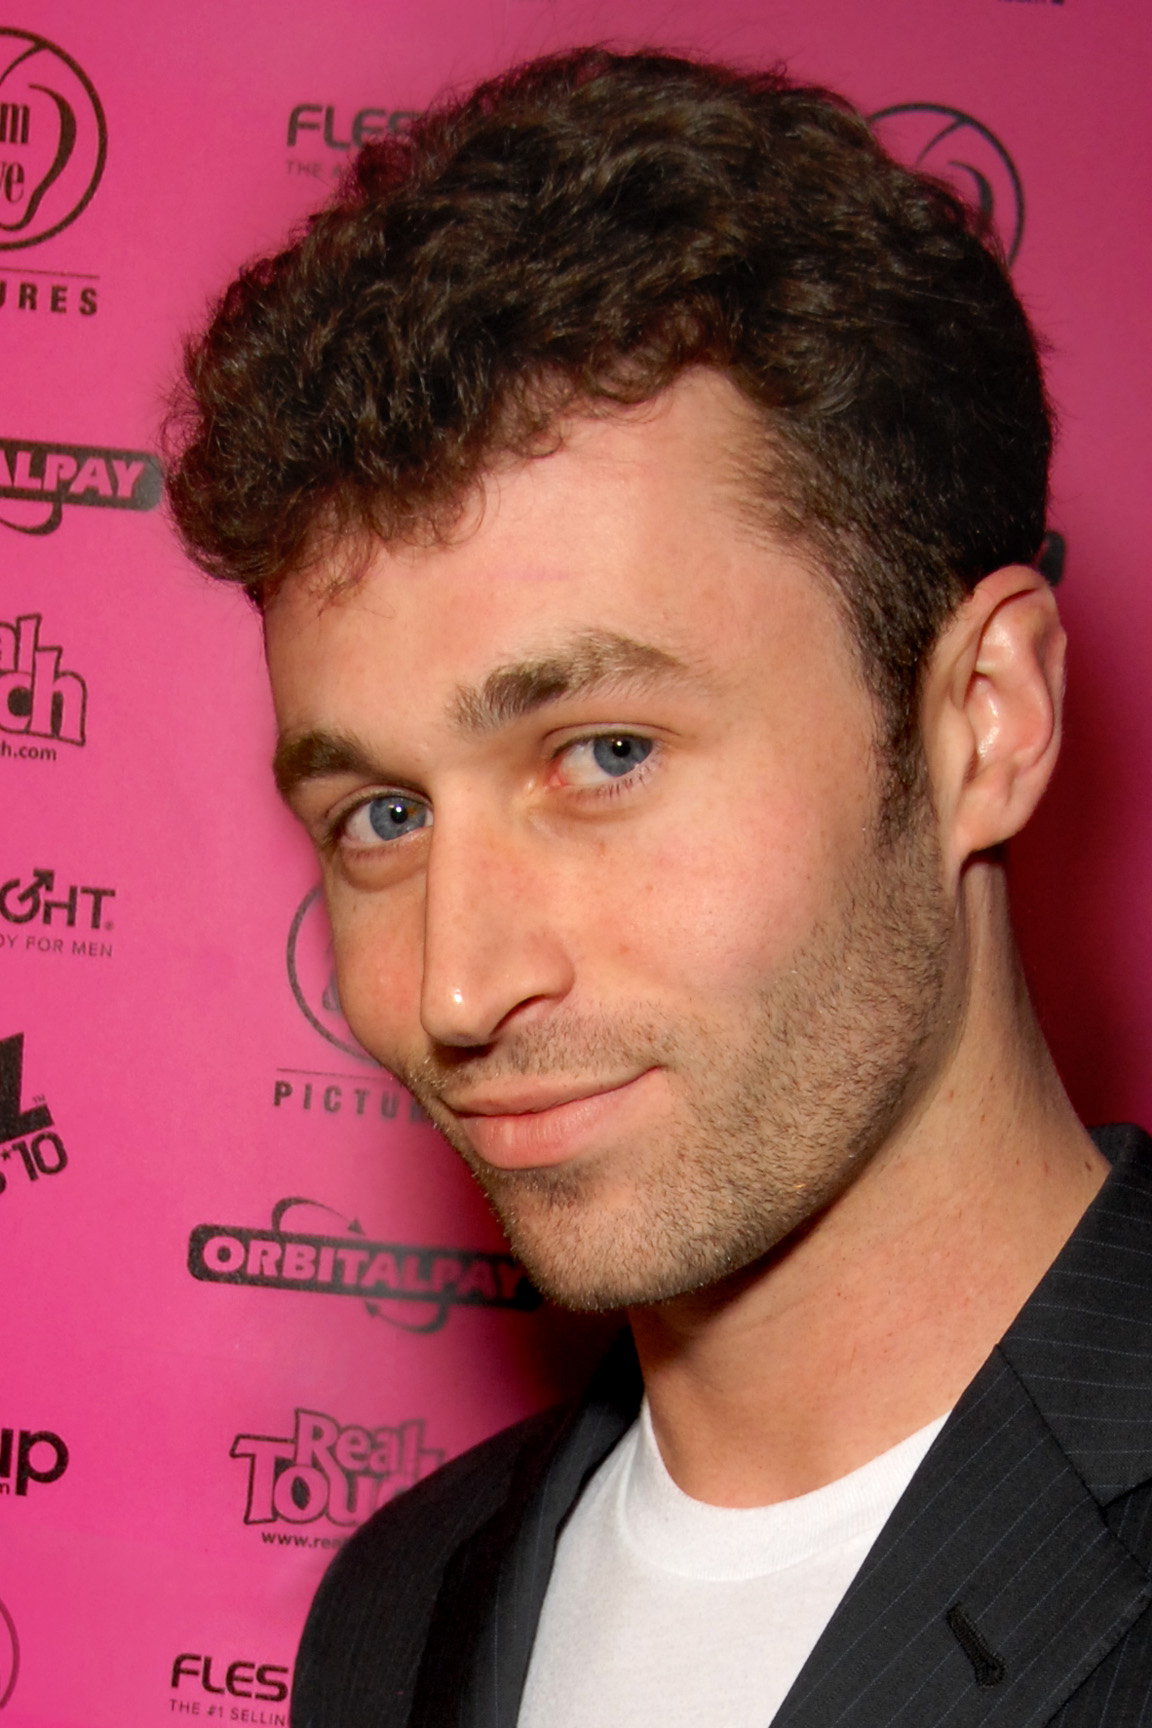 The 32-year old son of father (?) and mother(?) James Deen in 2018 photo. James Deen earned a  million dollar salary - leaving the net worth at  million in 2018